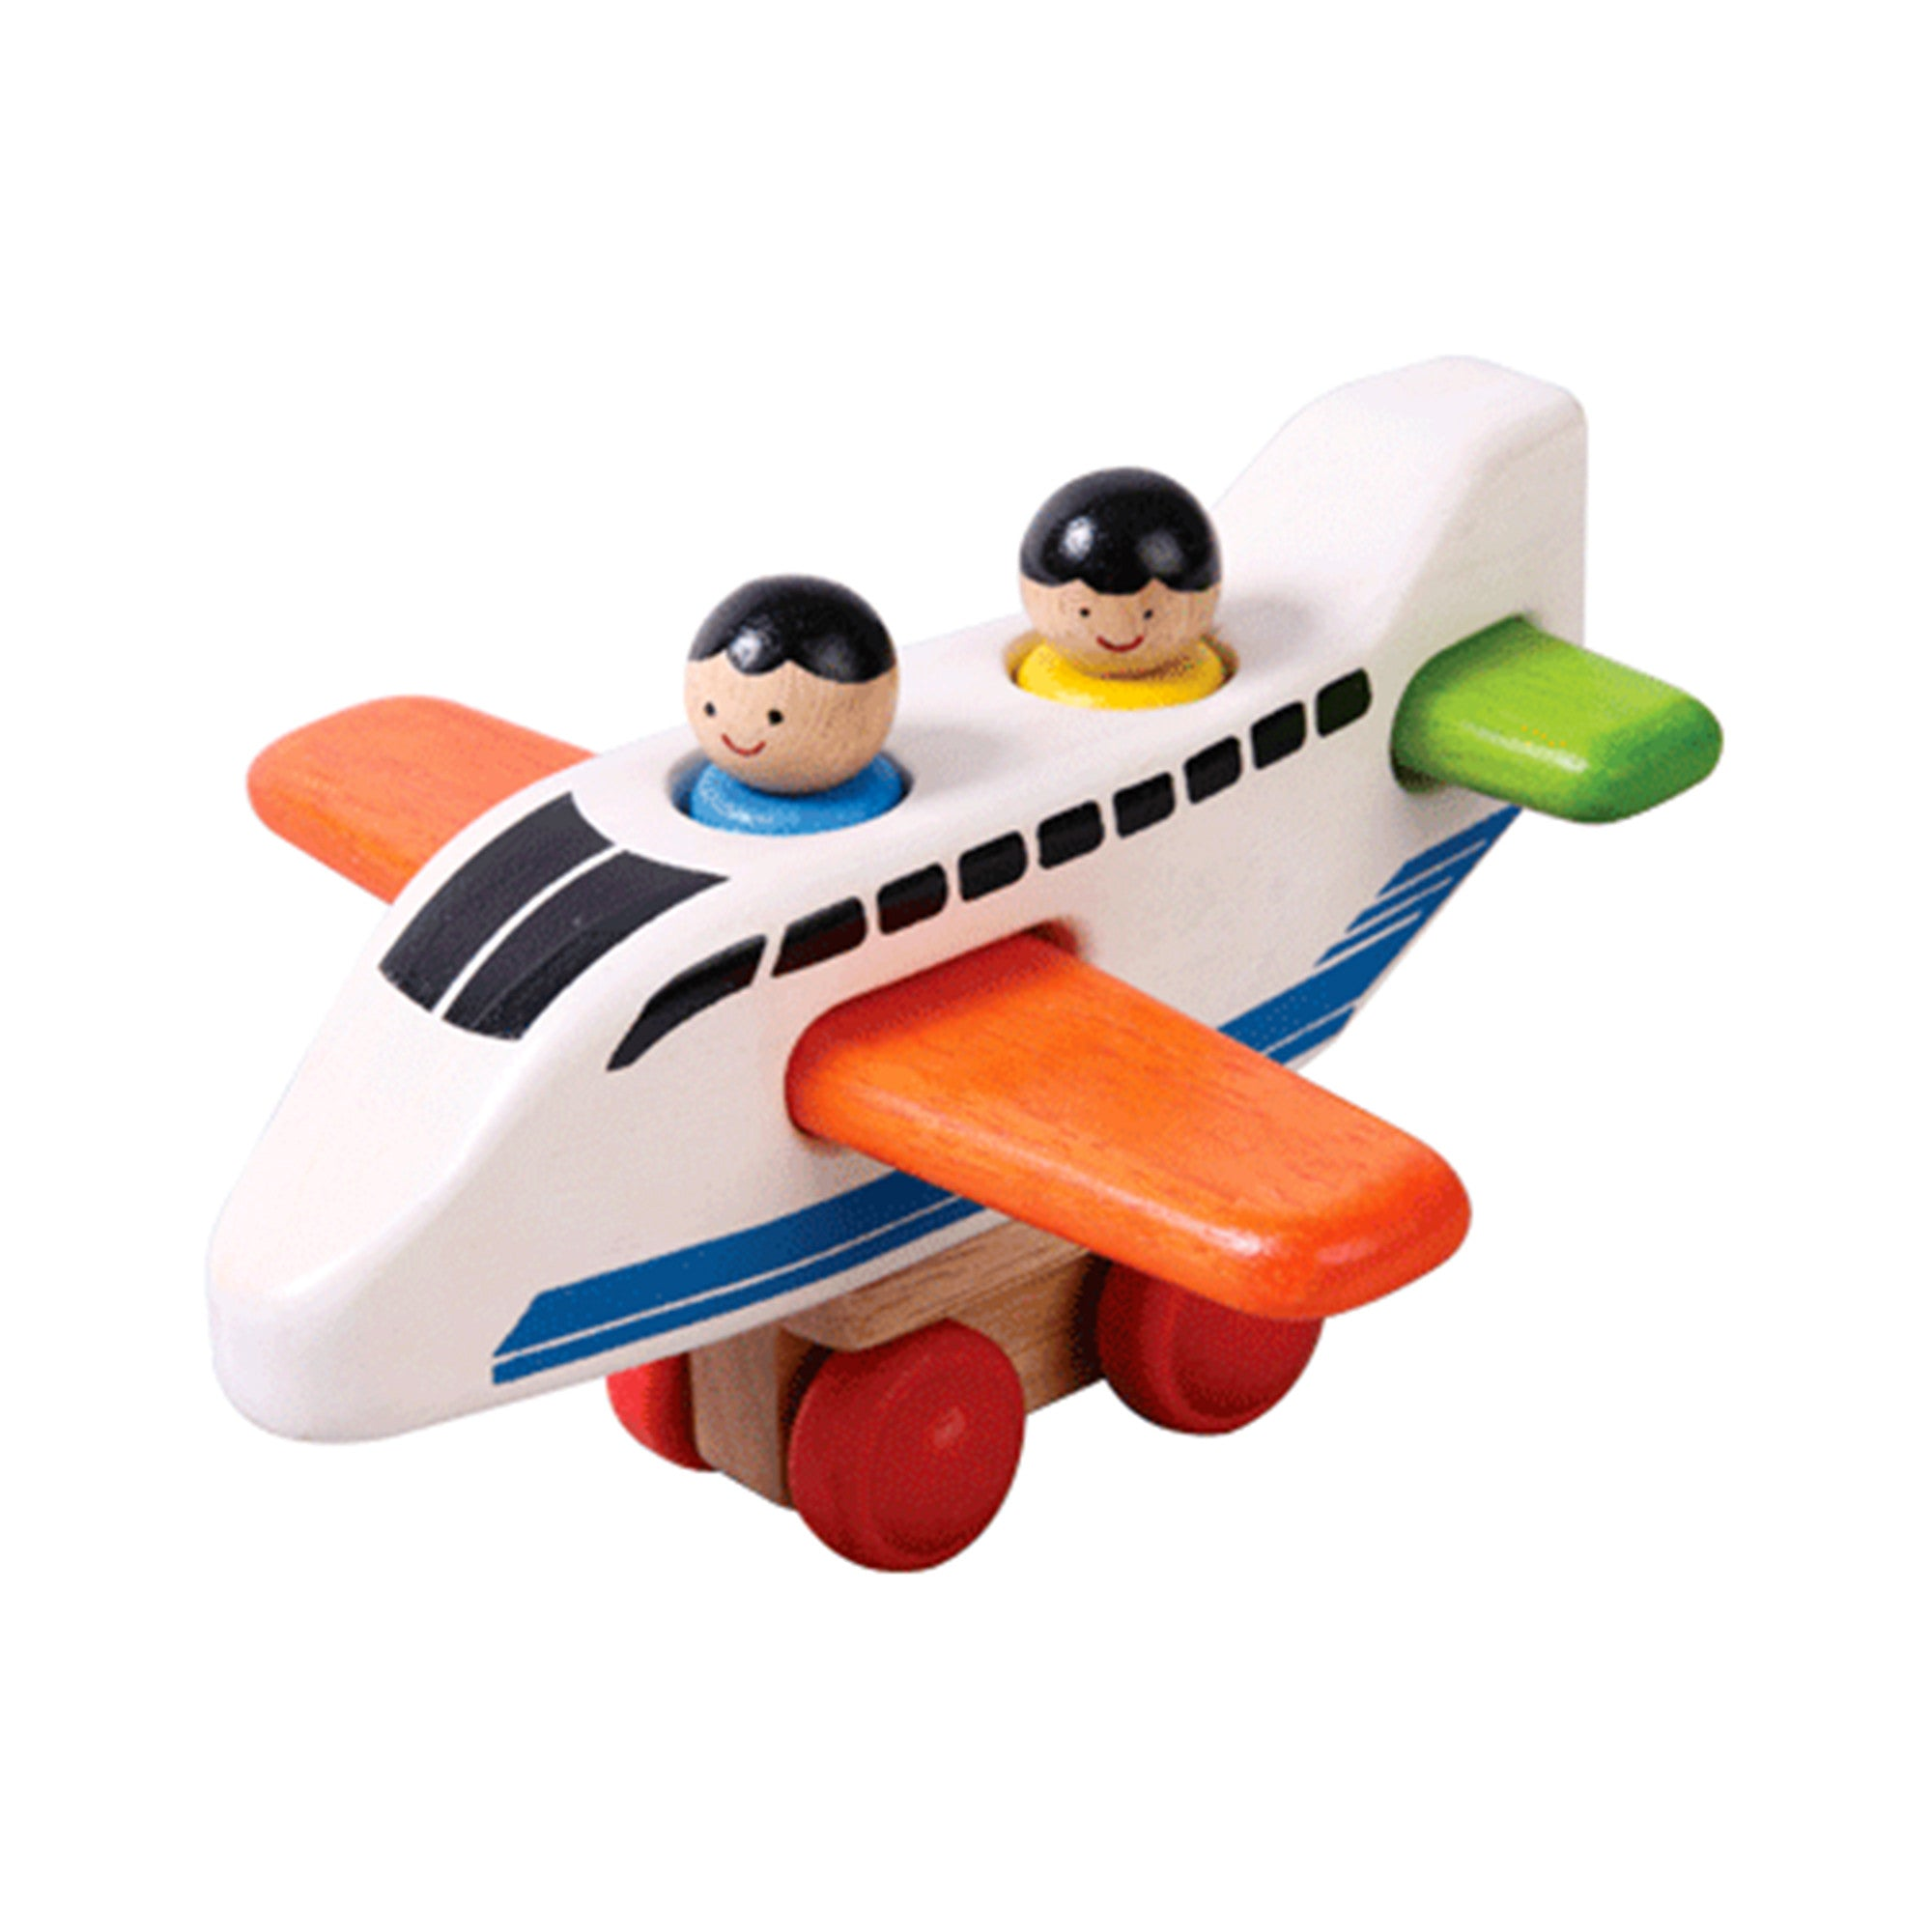 Wooden Plane Vertical Jigsaw Toy   - Voila - Little Earth Nest - 1